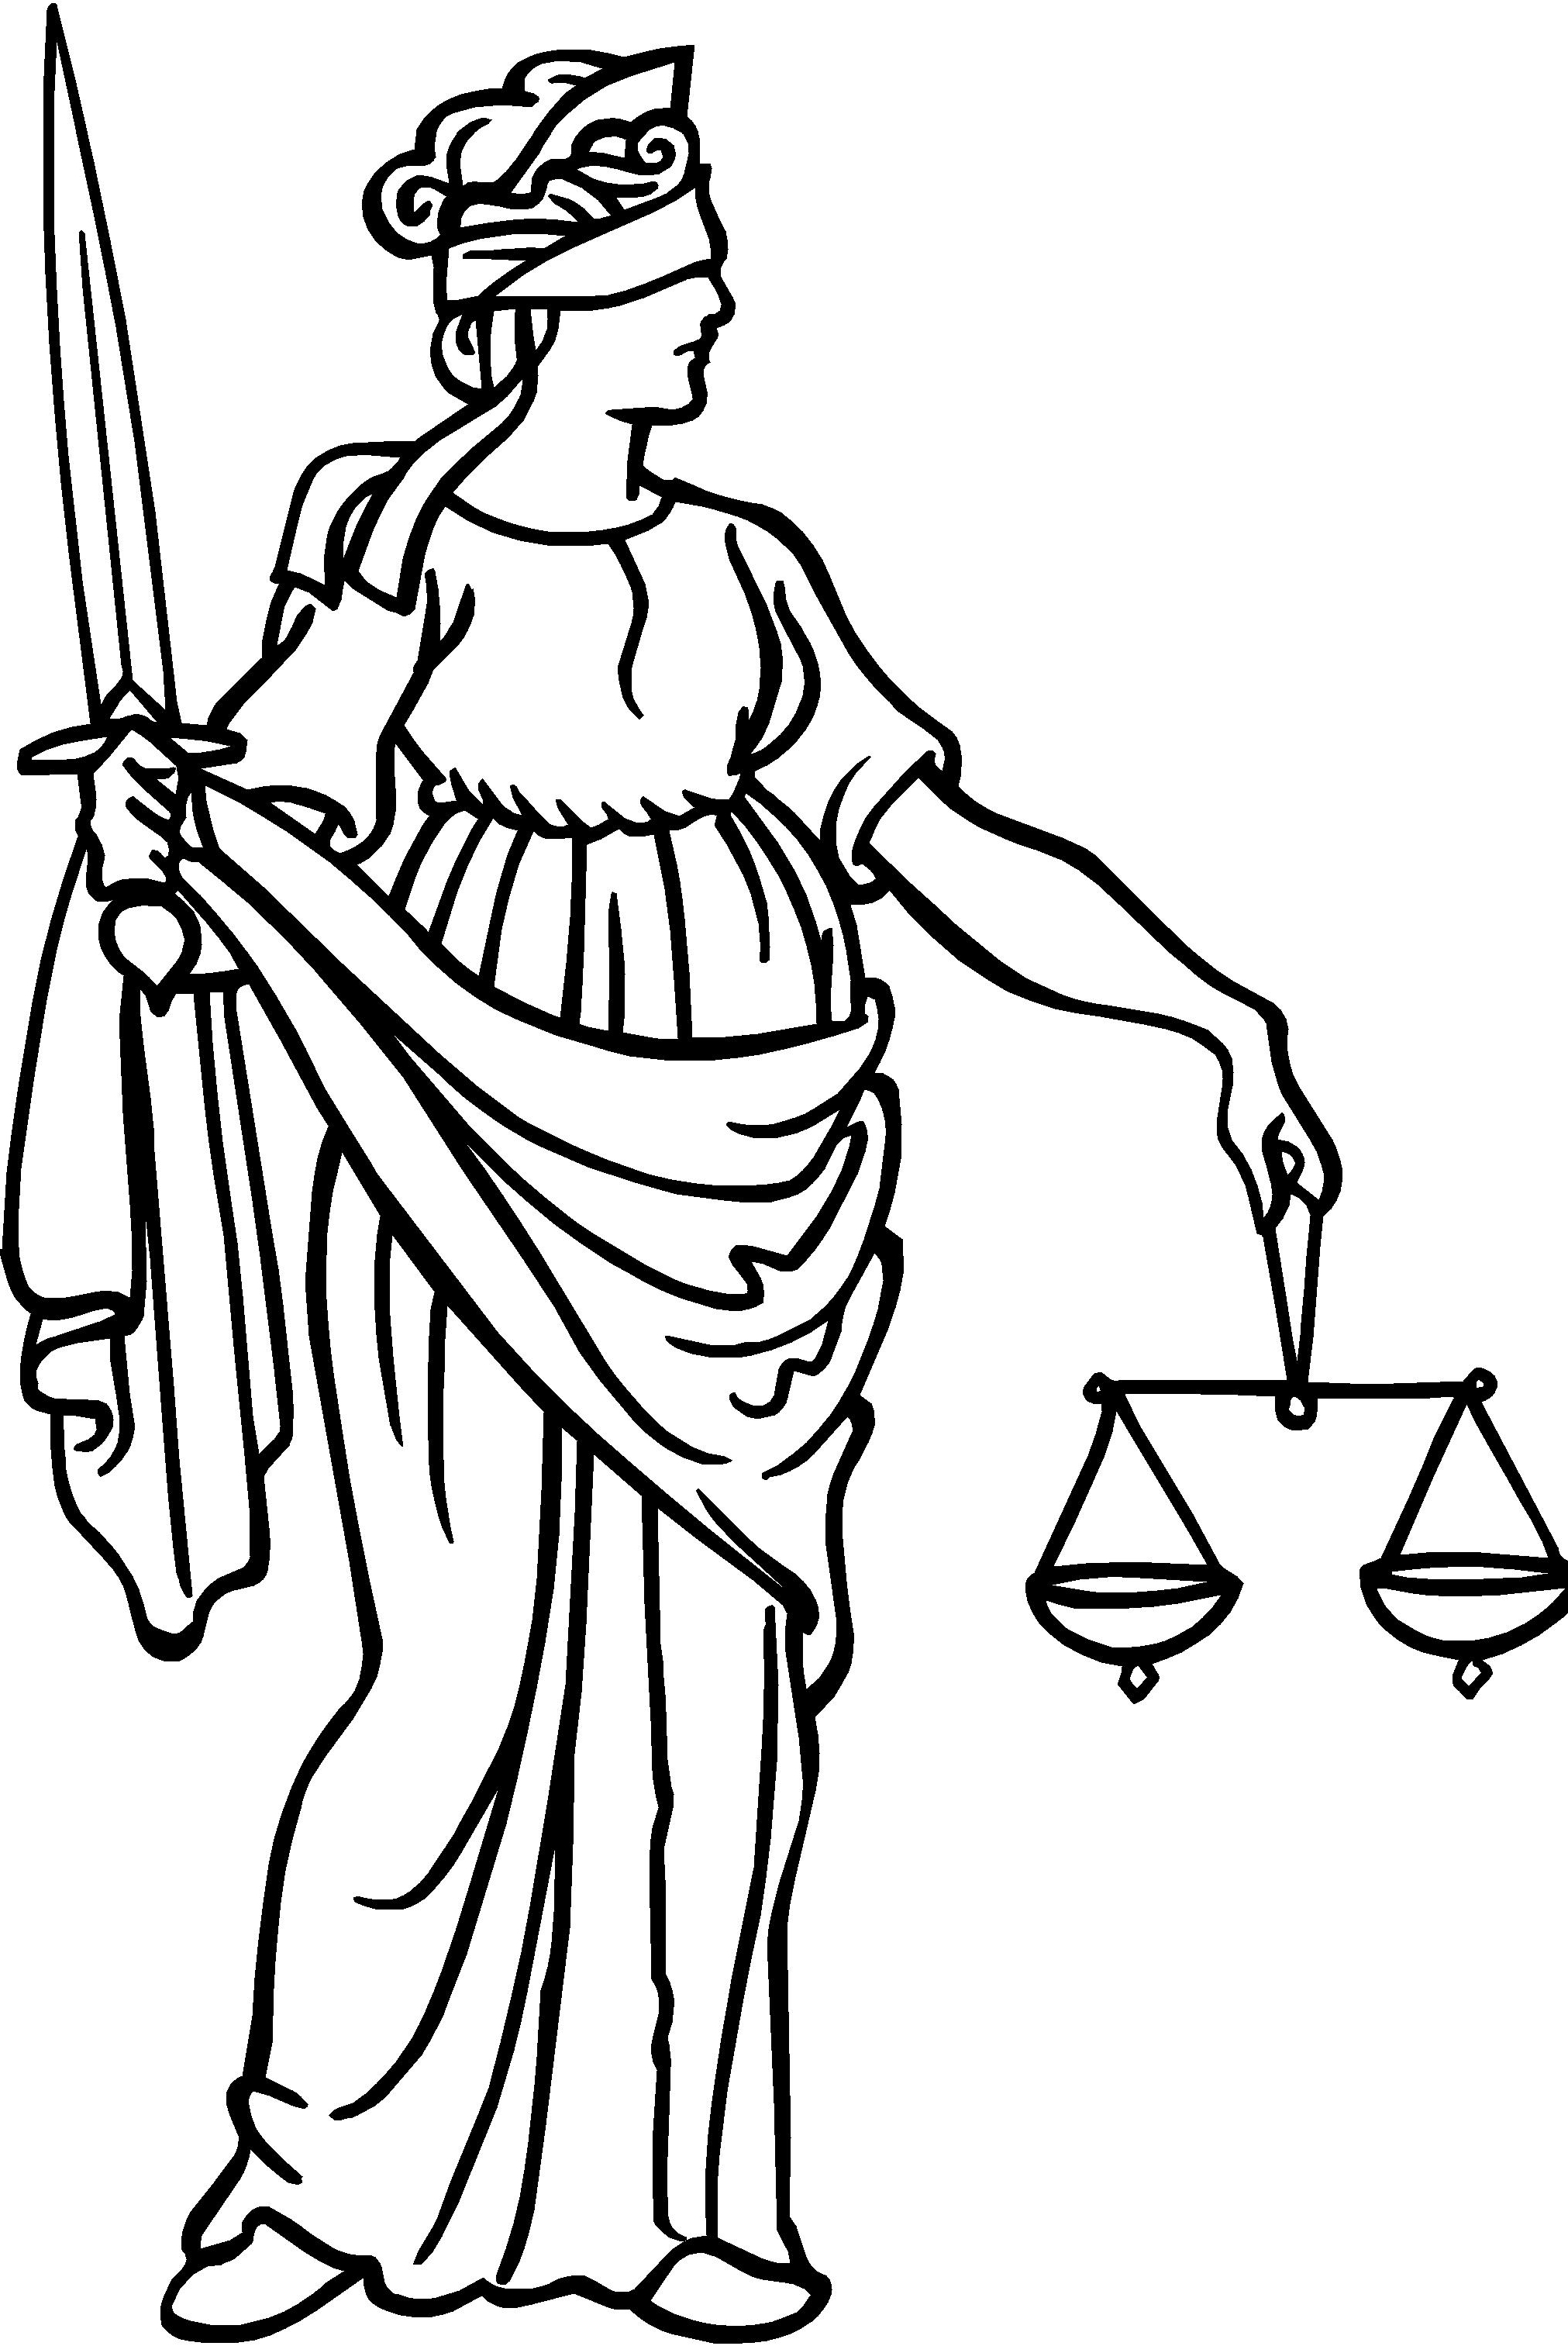 Blind Justice Clipart